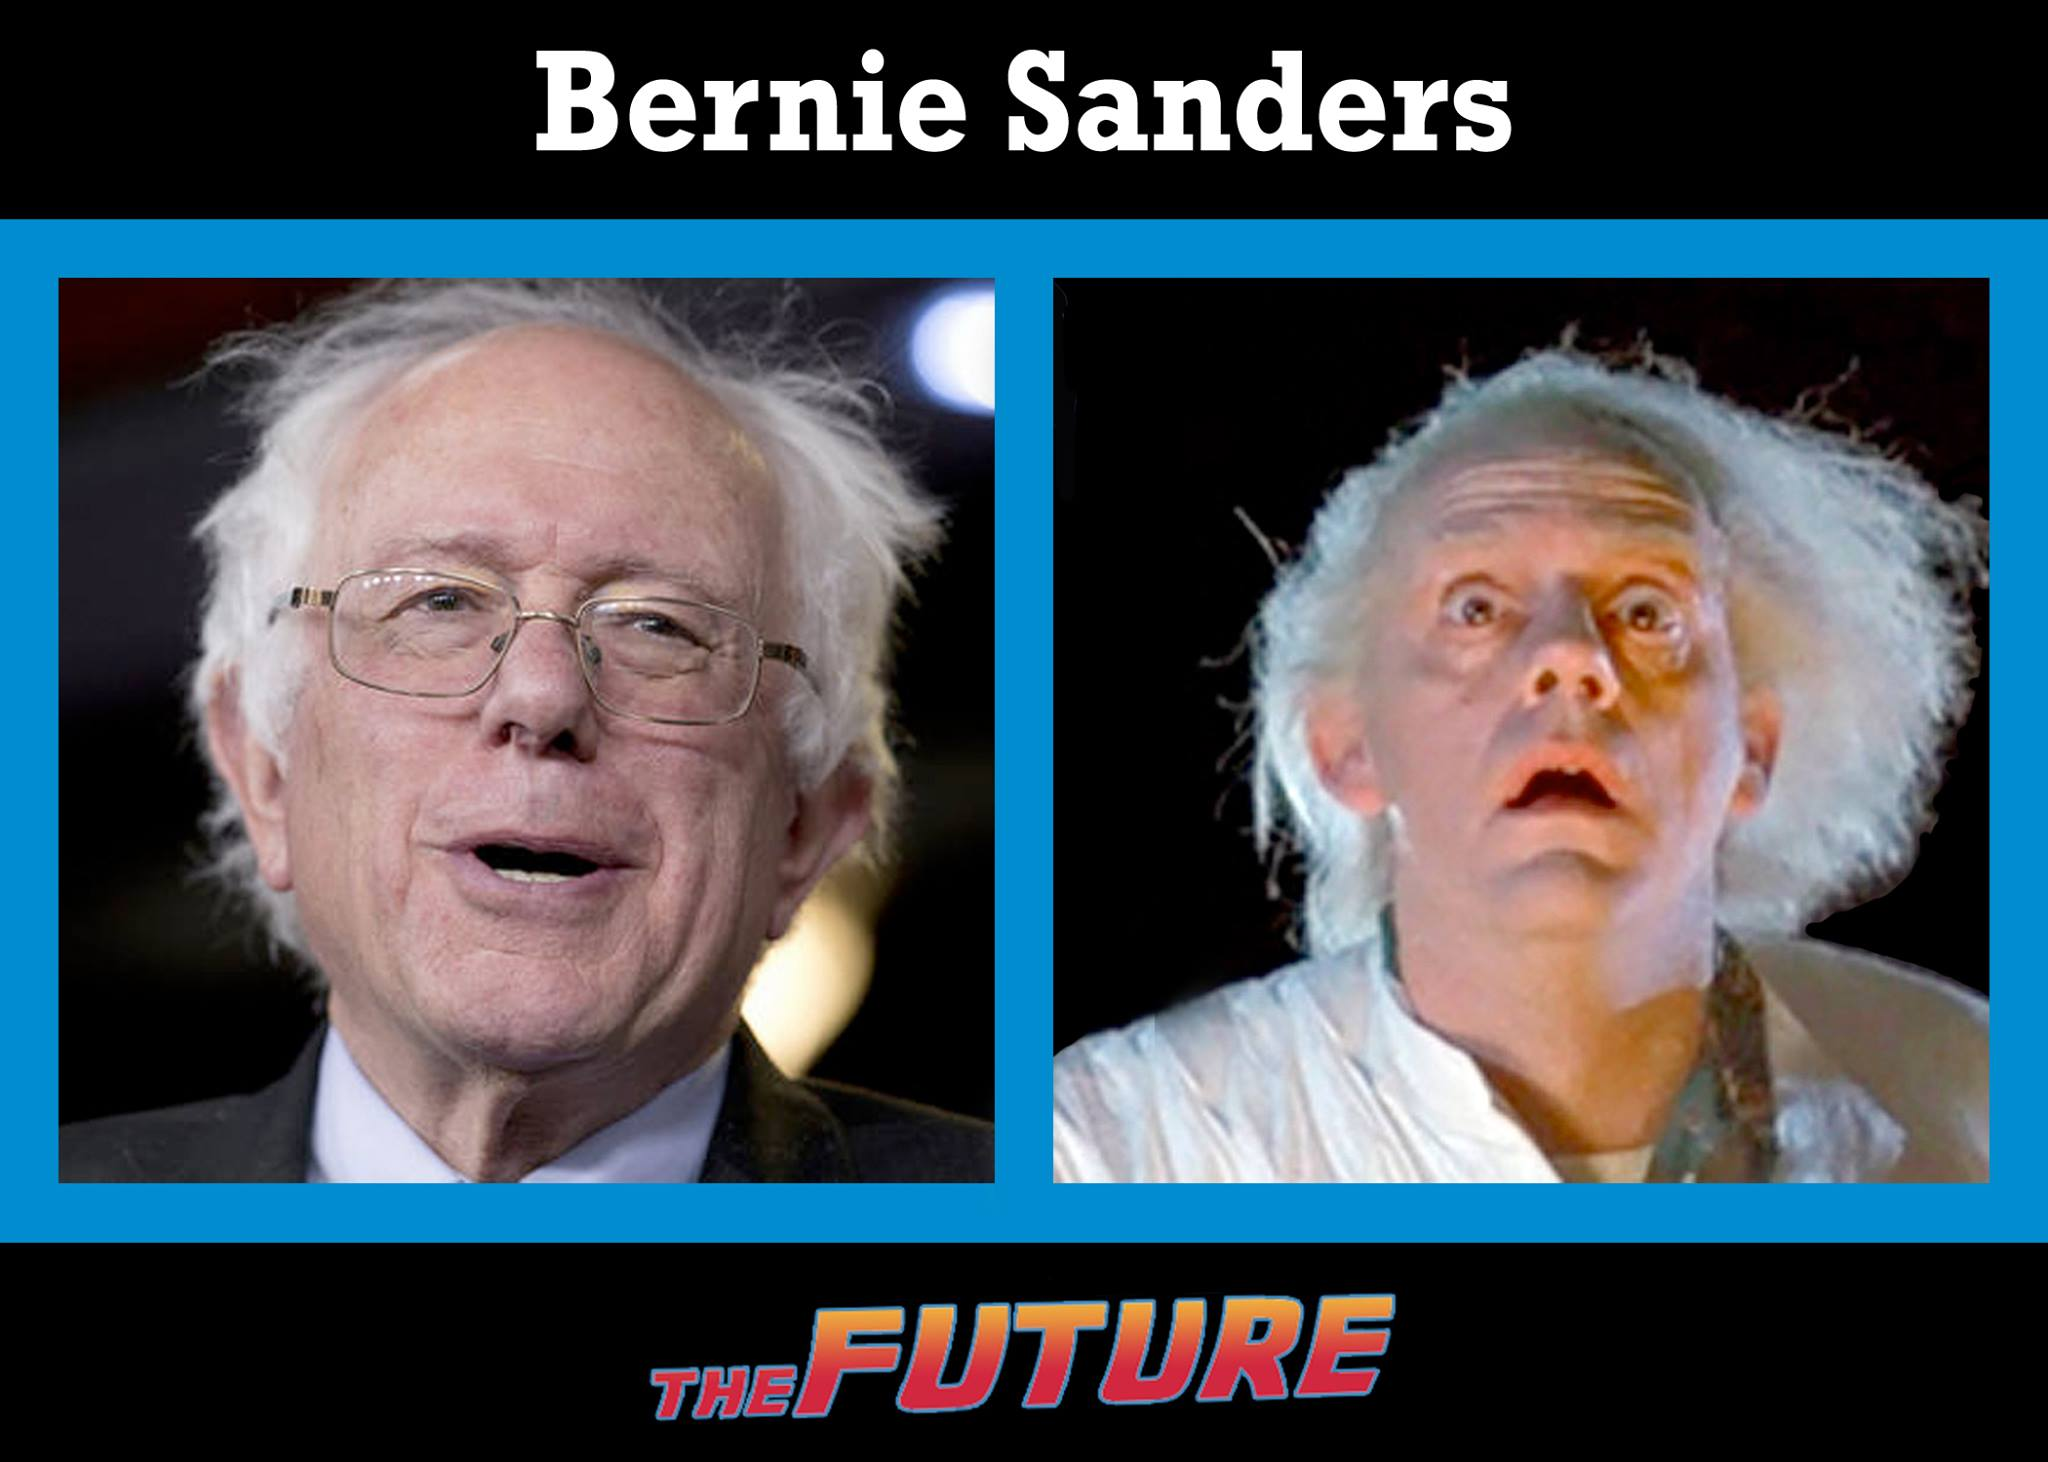 Bernie Sanders: The Future